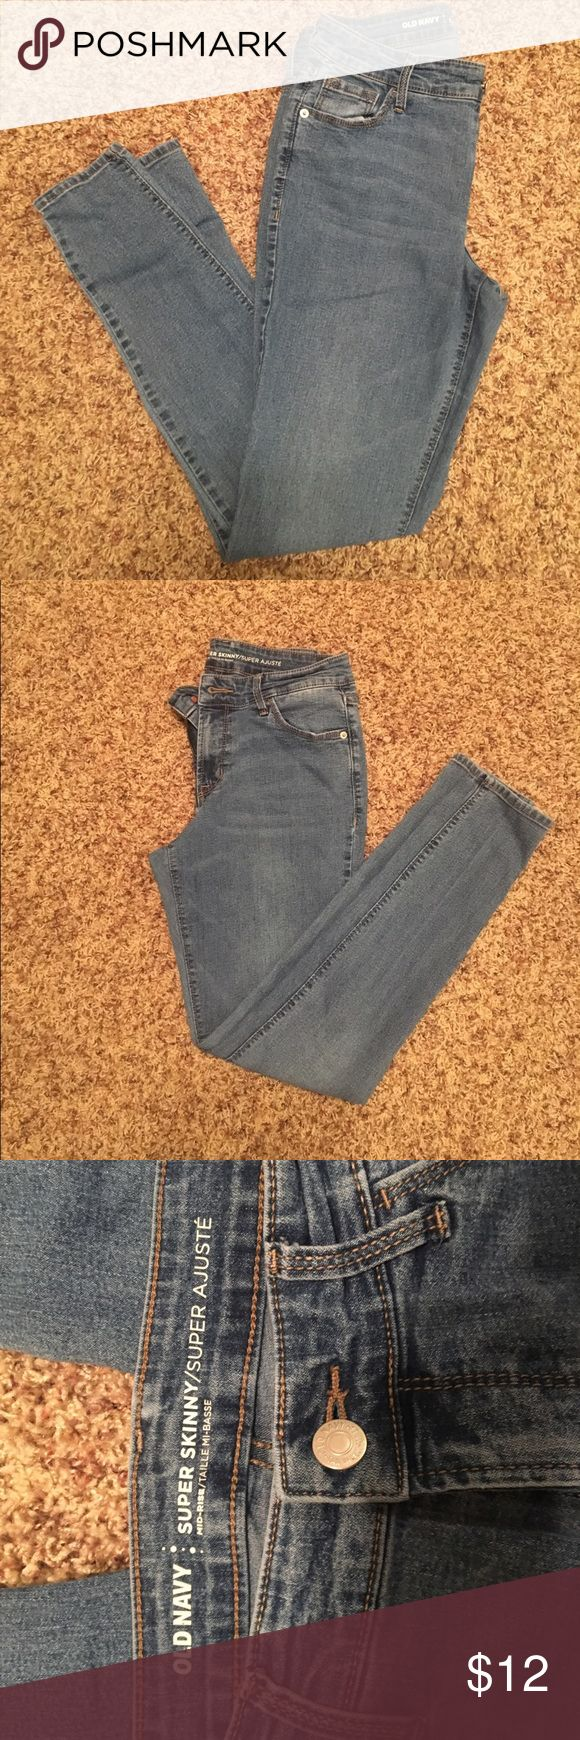 Mid rise old navy skinny jeans High waisted VERY soft skinny jeans. Thin material that is semi stretchy. Used to be my favorite pair of jeans but still have lots of life left in them! Perfect for hiding a little bit of extra tummy 🙈🙊 Old Navy Jeans Skinny